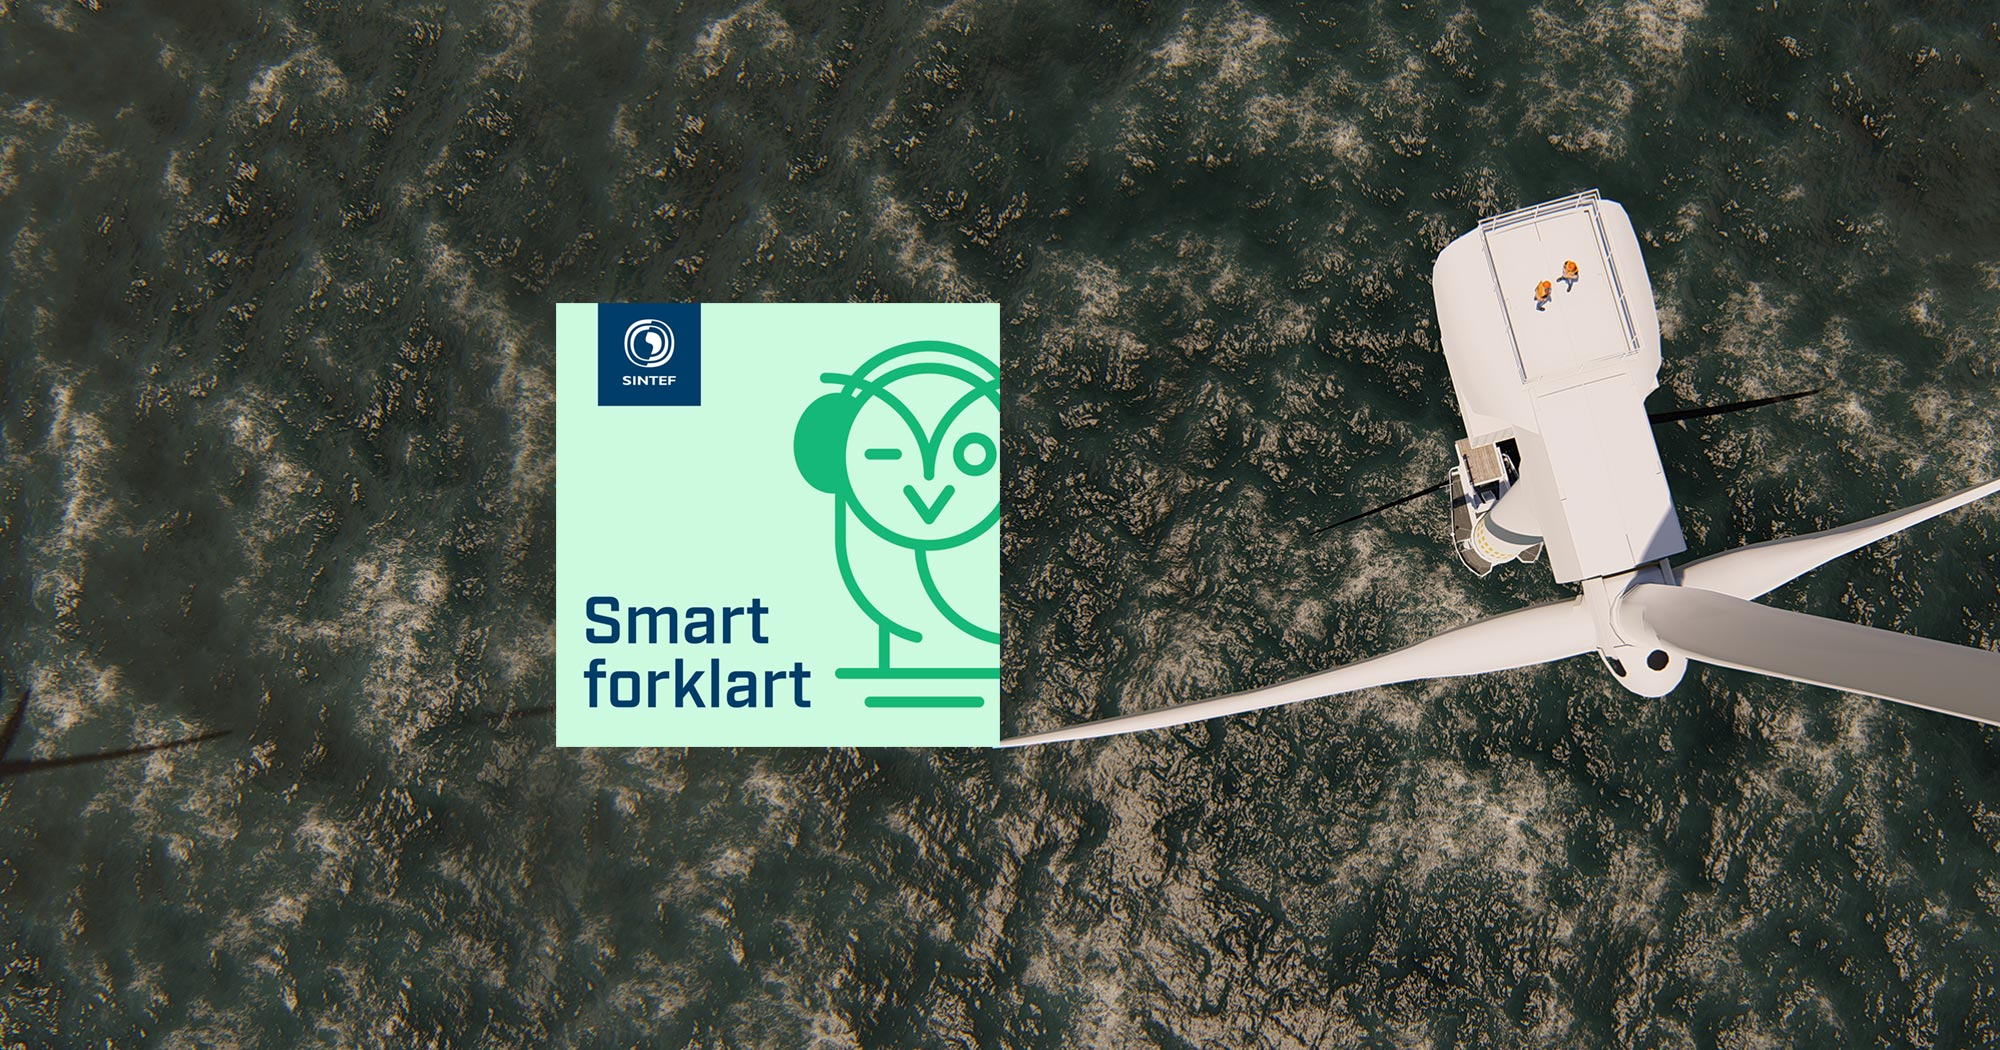 Offshore wind turbine from above, with Smart forklart podcast logo overlayed